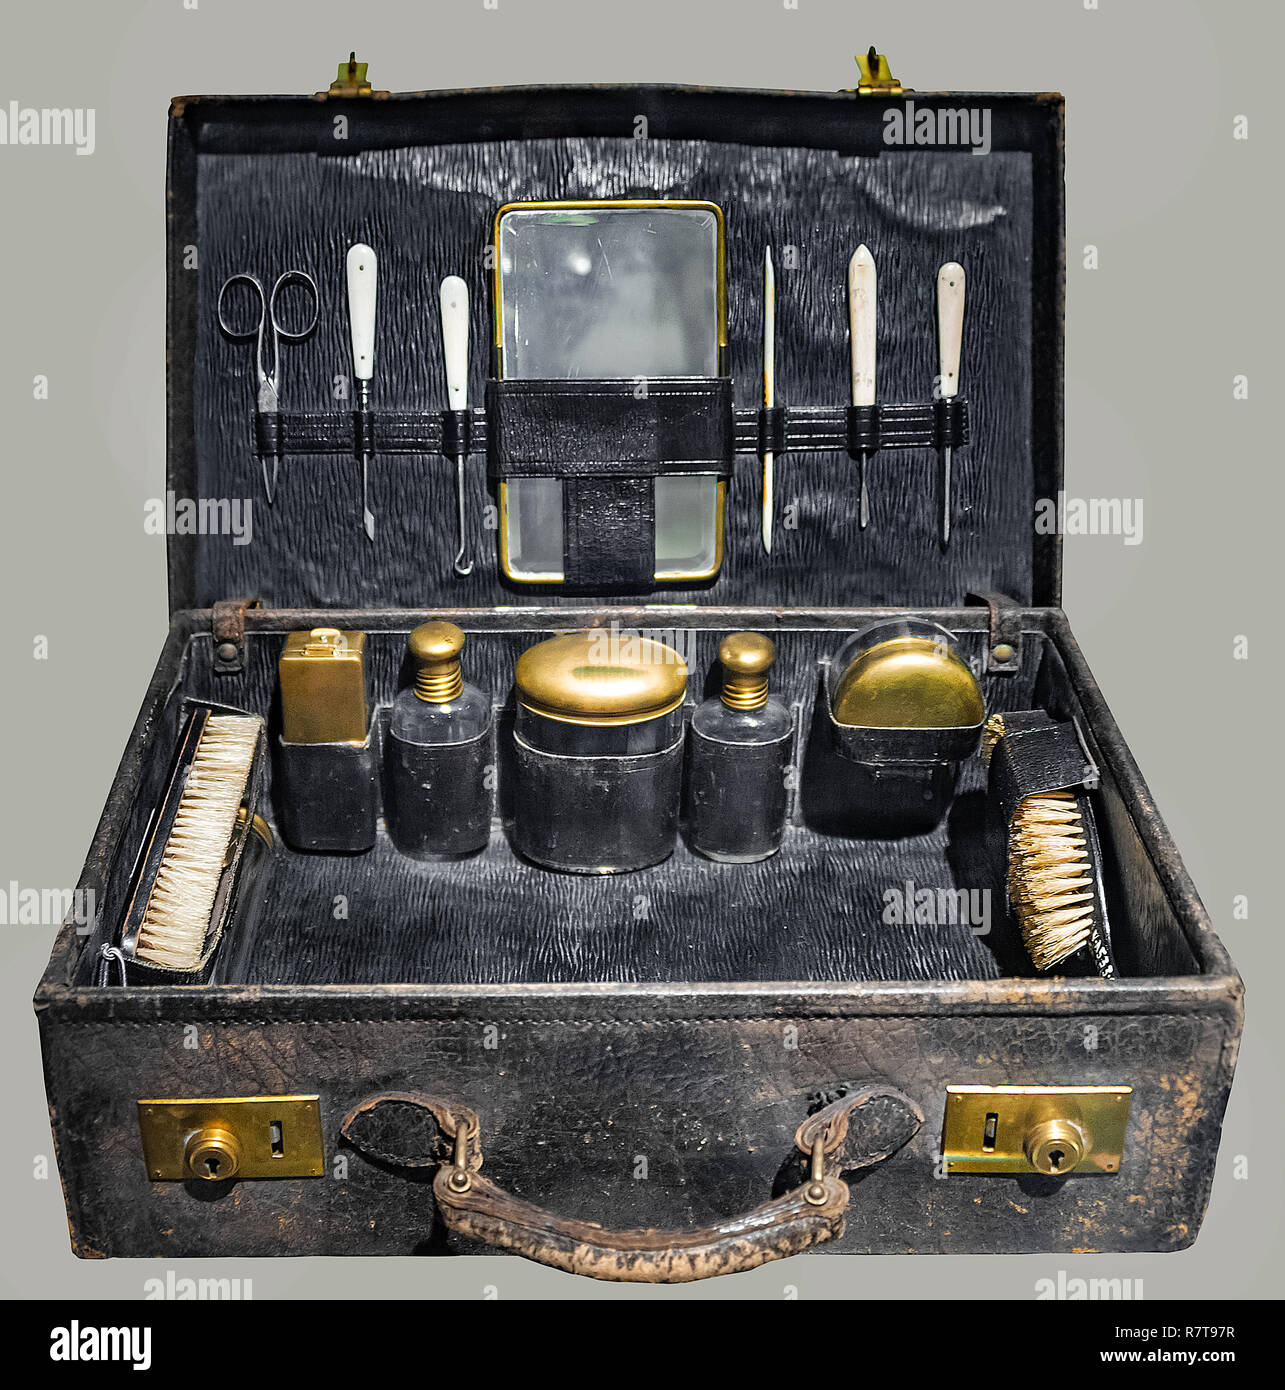 Vintage Toiletry Kit In Leather Travel Case On Isolated Gray Background And Clipping Path Stock Photo Alamy